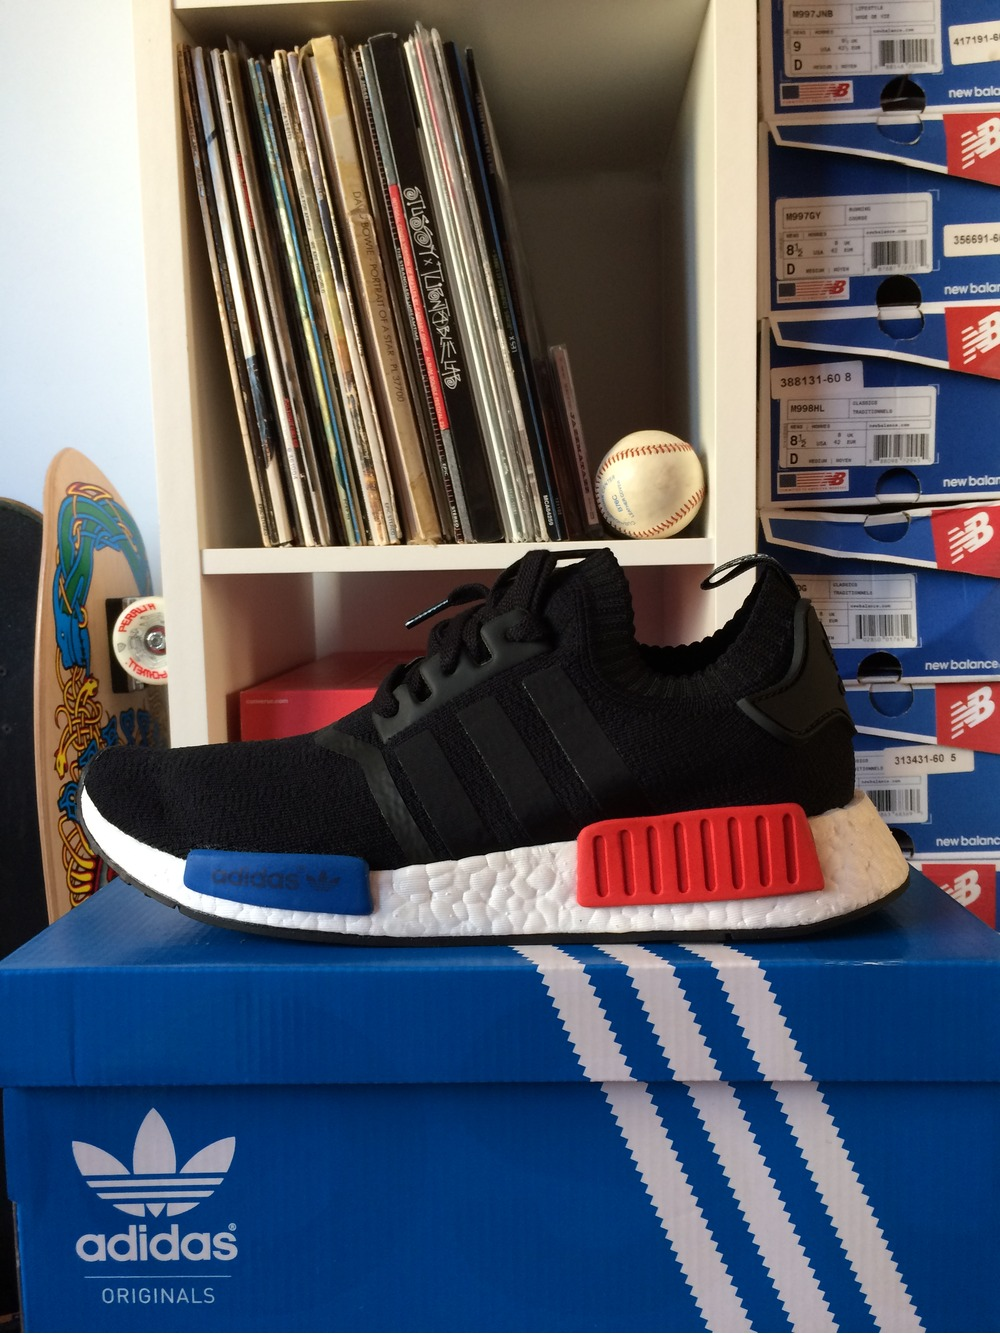 qhuwyc Adidas NMD Runner PK size 9us (#273403) from Colt.45 at KLEKT